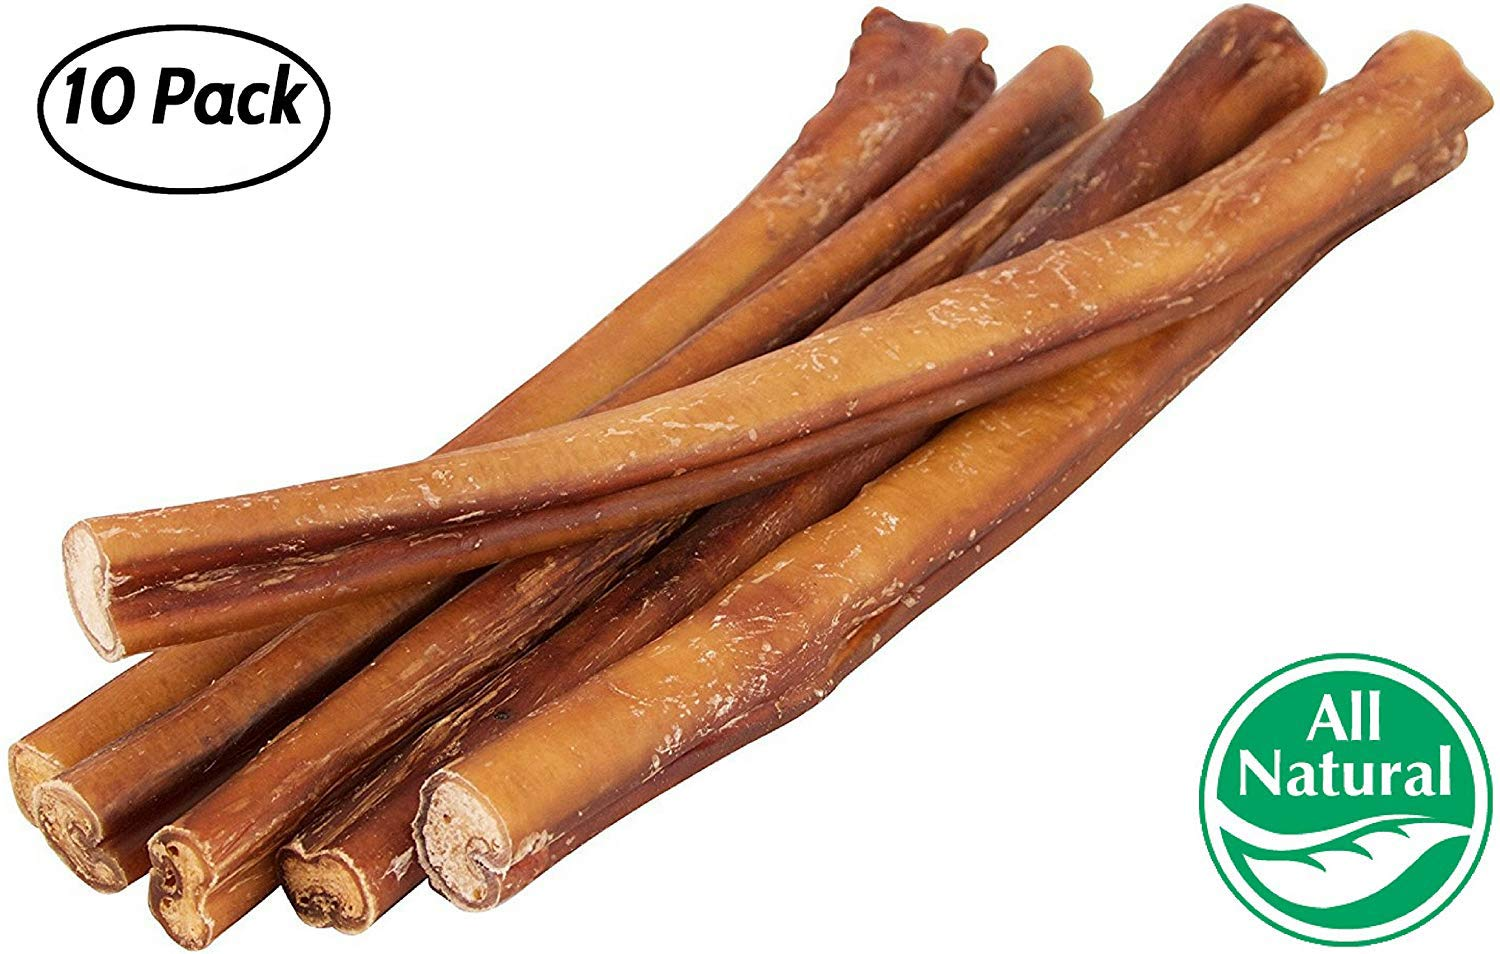 12'' Straight Bully Sticks for Dogs [LARGE THICKNESS] (10 Pack) - All Natural & Odorless Bully Bones | Long Lasting Chew Dental Treats | Best Thick Bullie Sticks for K9 or Puppies | Grass-Fed Beef